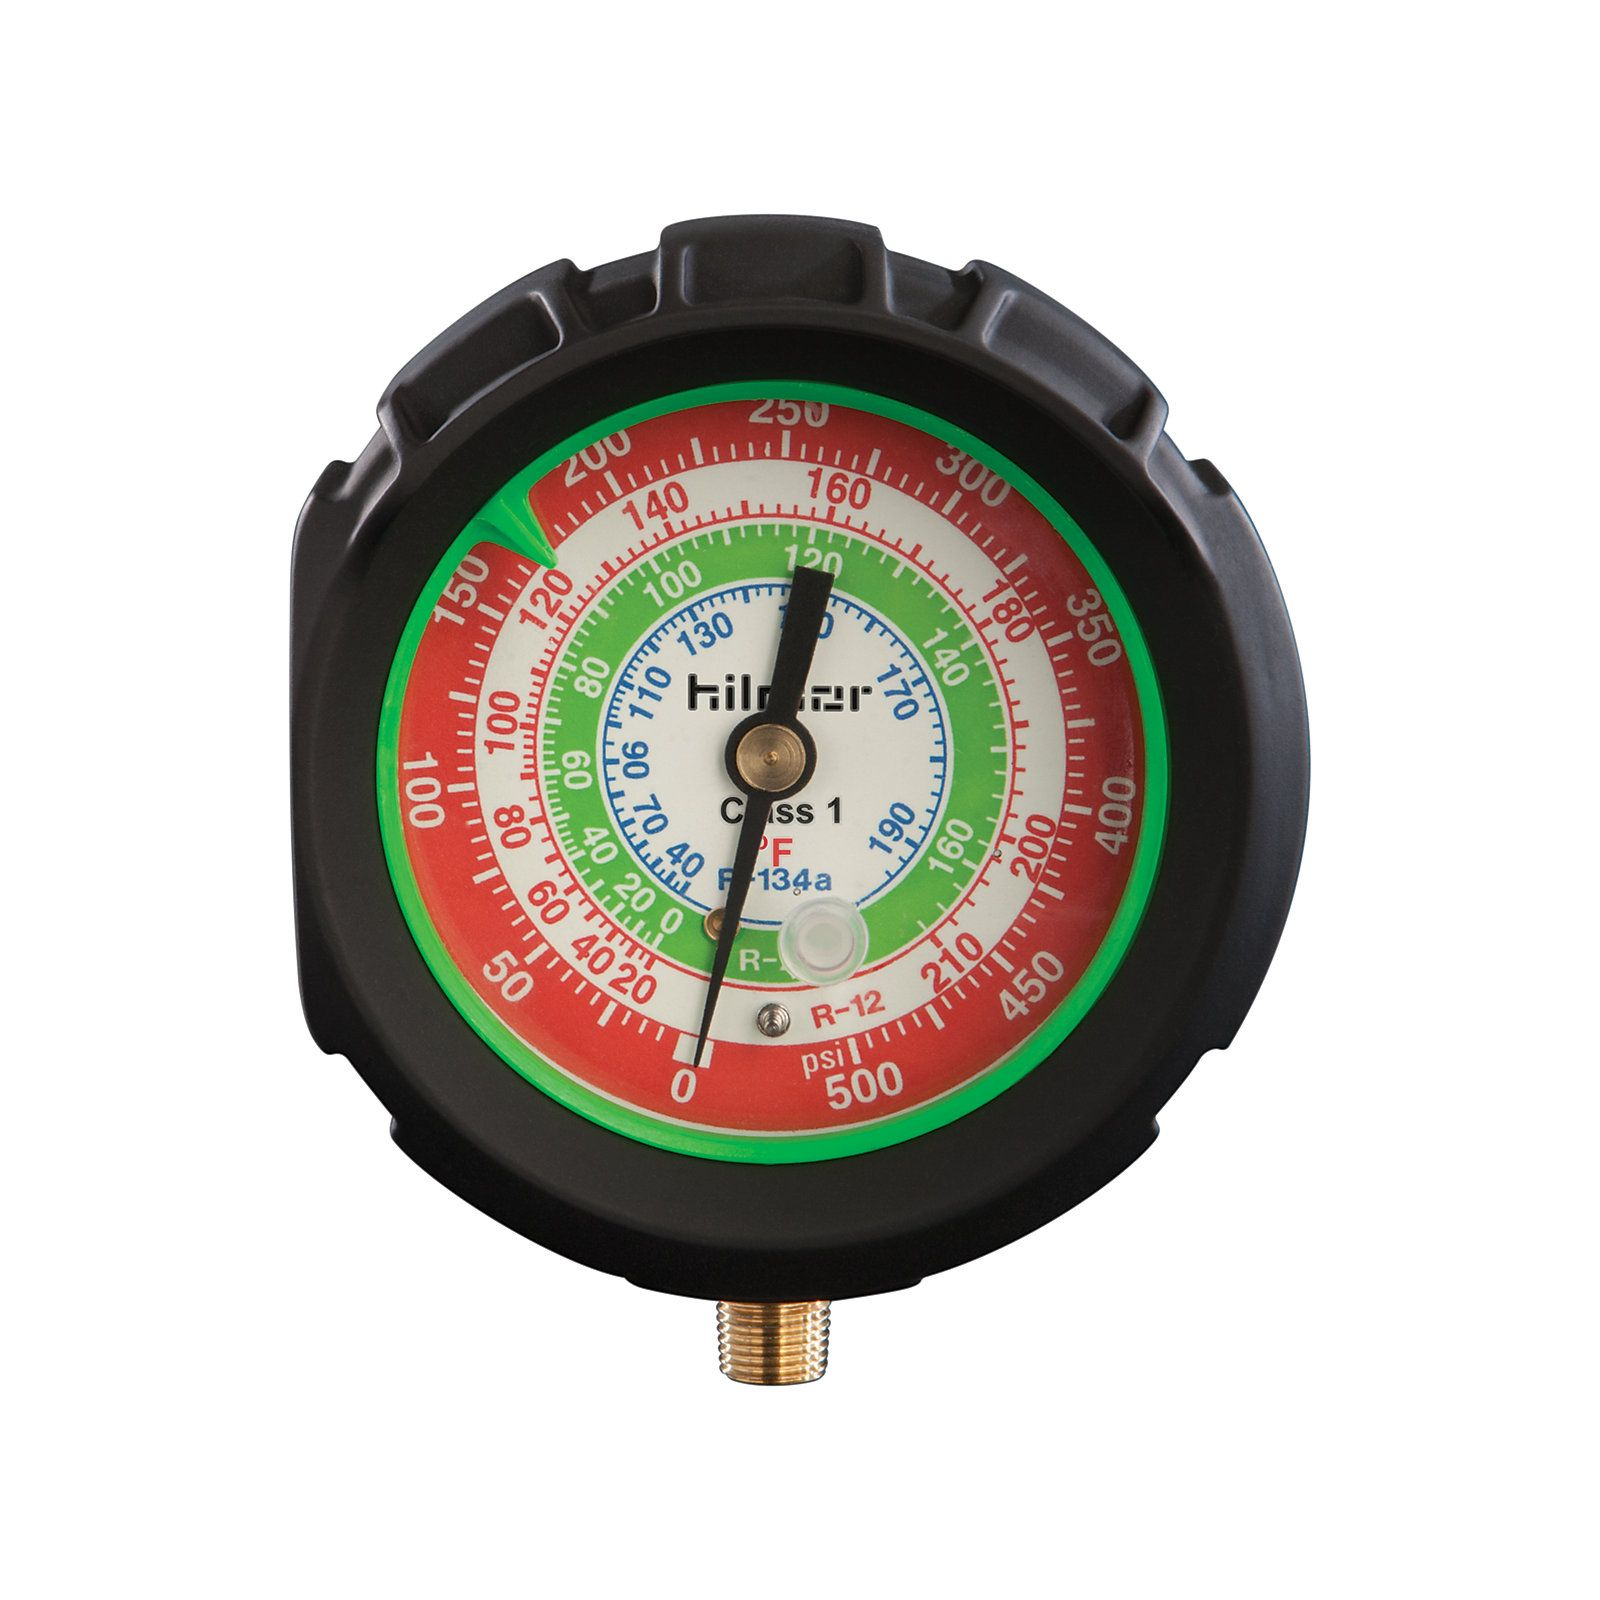 hilmor 1839087 - AG1222134H 80mm Analog Gauge R12-22-134A High